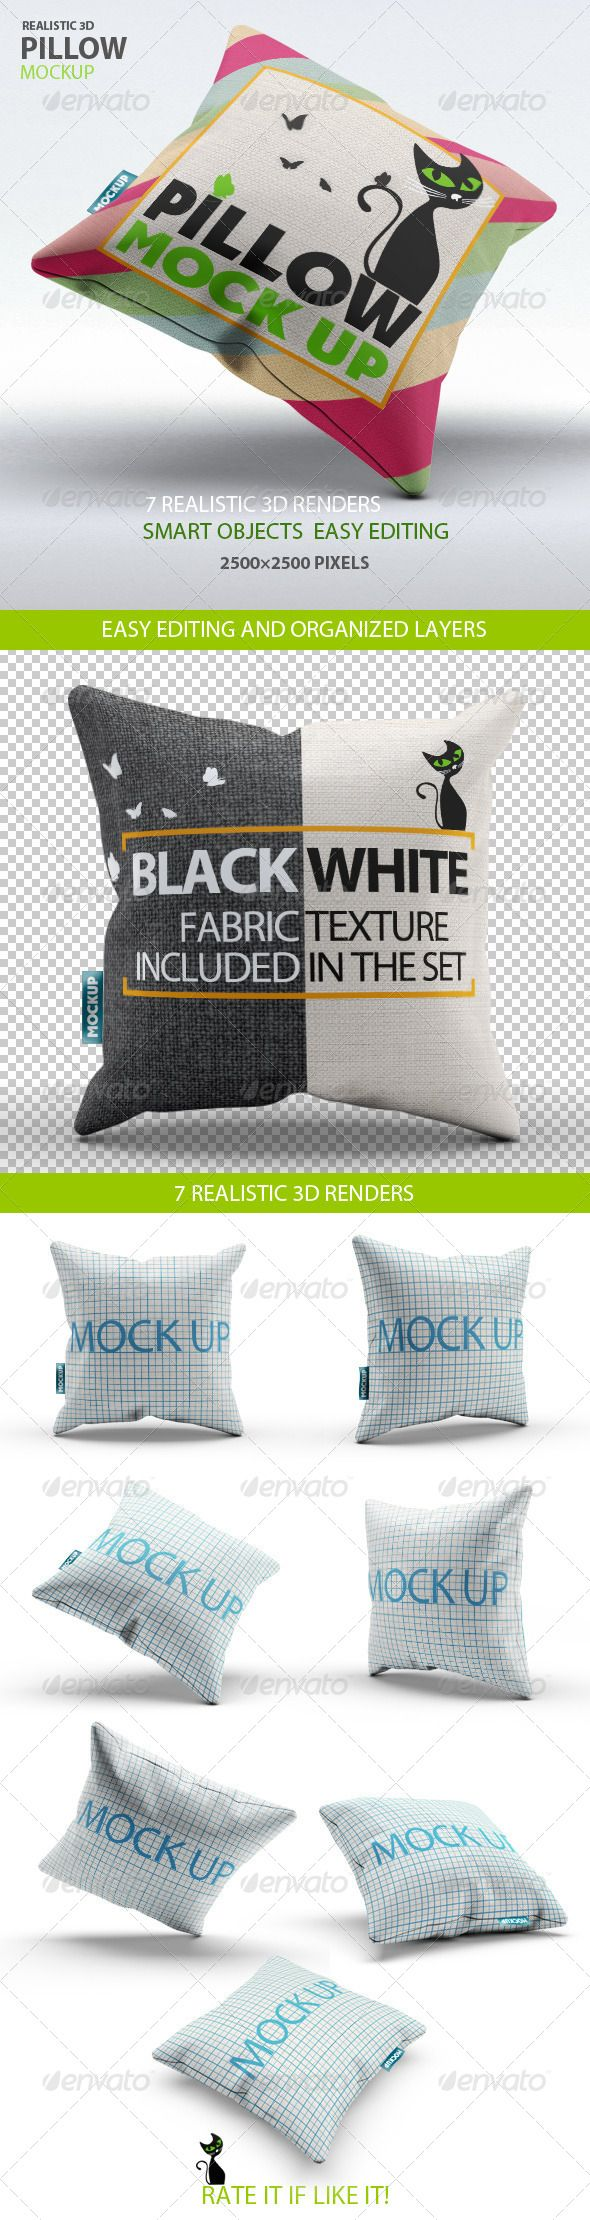 Pillow Mock Up | GraphicRiver